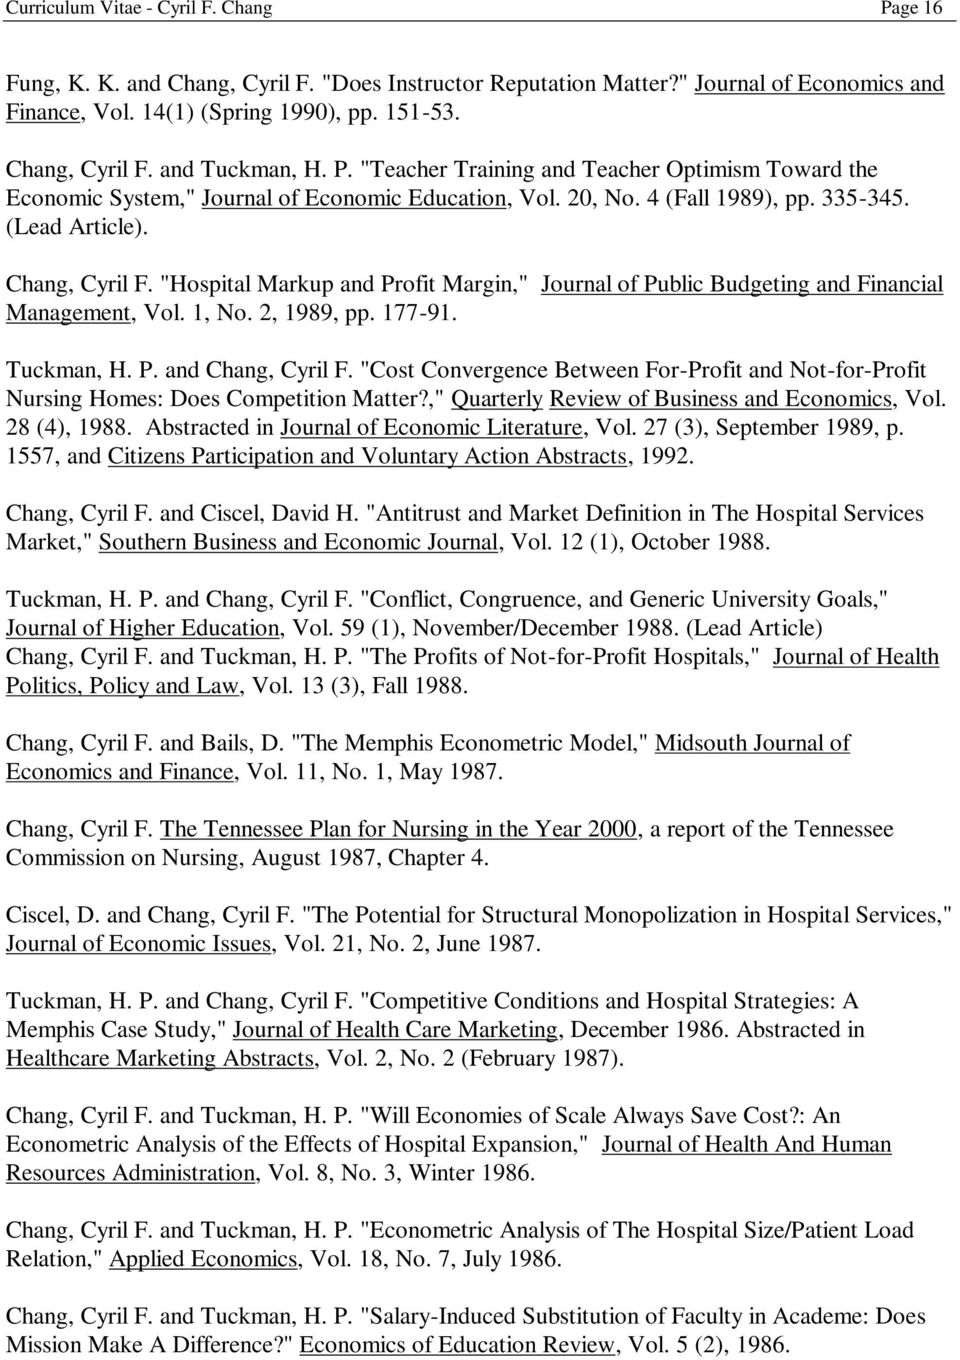 """Hospital Markup and Profit Margin,"" Journal of Public Budgeting and Financial Management, Vol. 1, No. 2, 1989, pp. 177-91. Tuckman, H. P. and Chang, Cyril F."